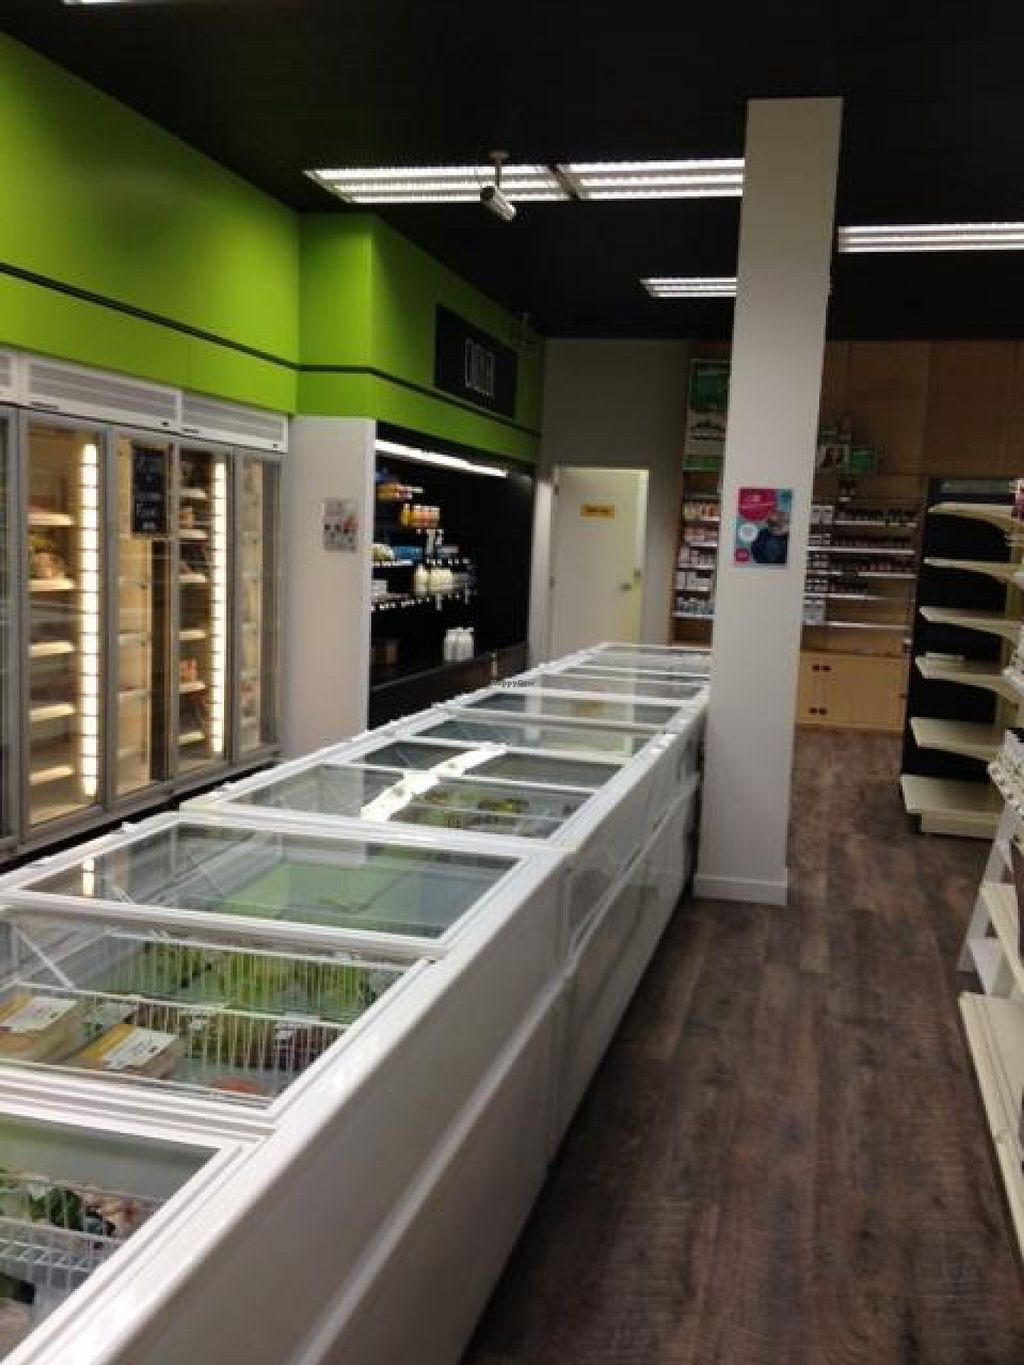 """Photo of Wholefoods Market and Health Store  by <a href=""""/members/profile/Yolanda"""">Yolanda</a> <br/>fridges <br/> April 29, 2016  - <a href='/contact/abuse/image/72951/146747'>Report</a>"""